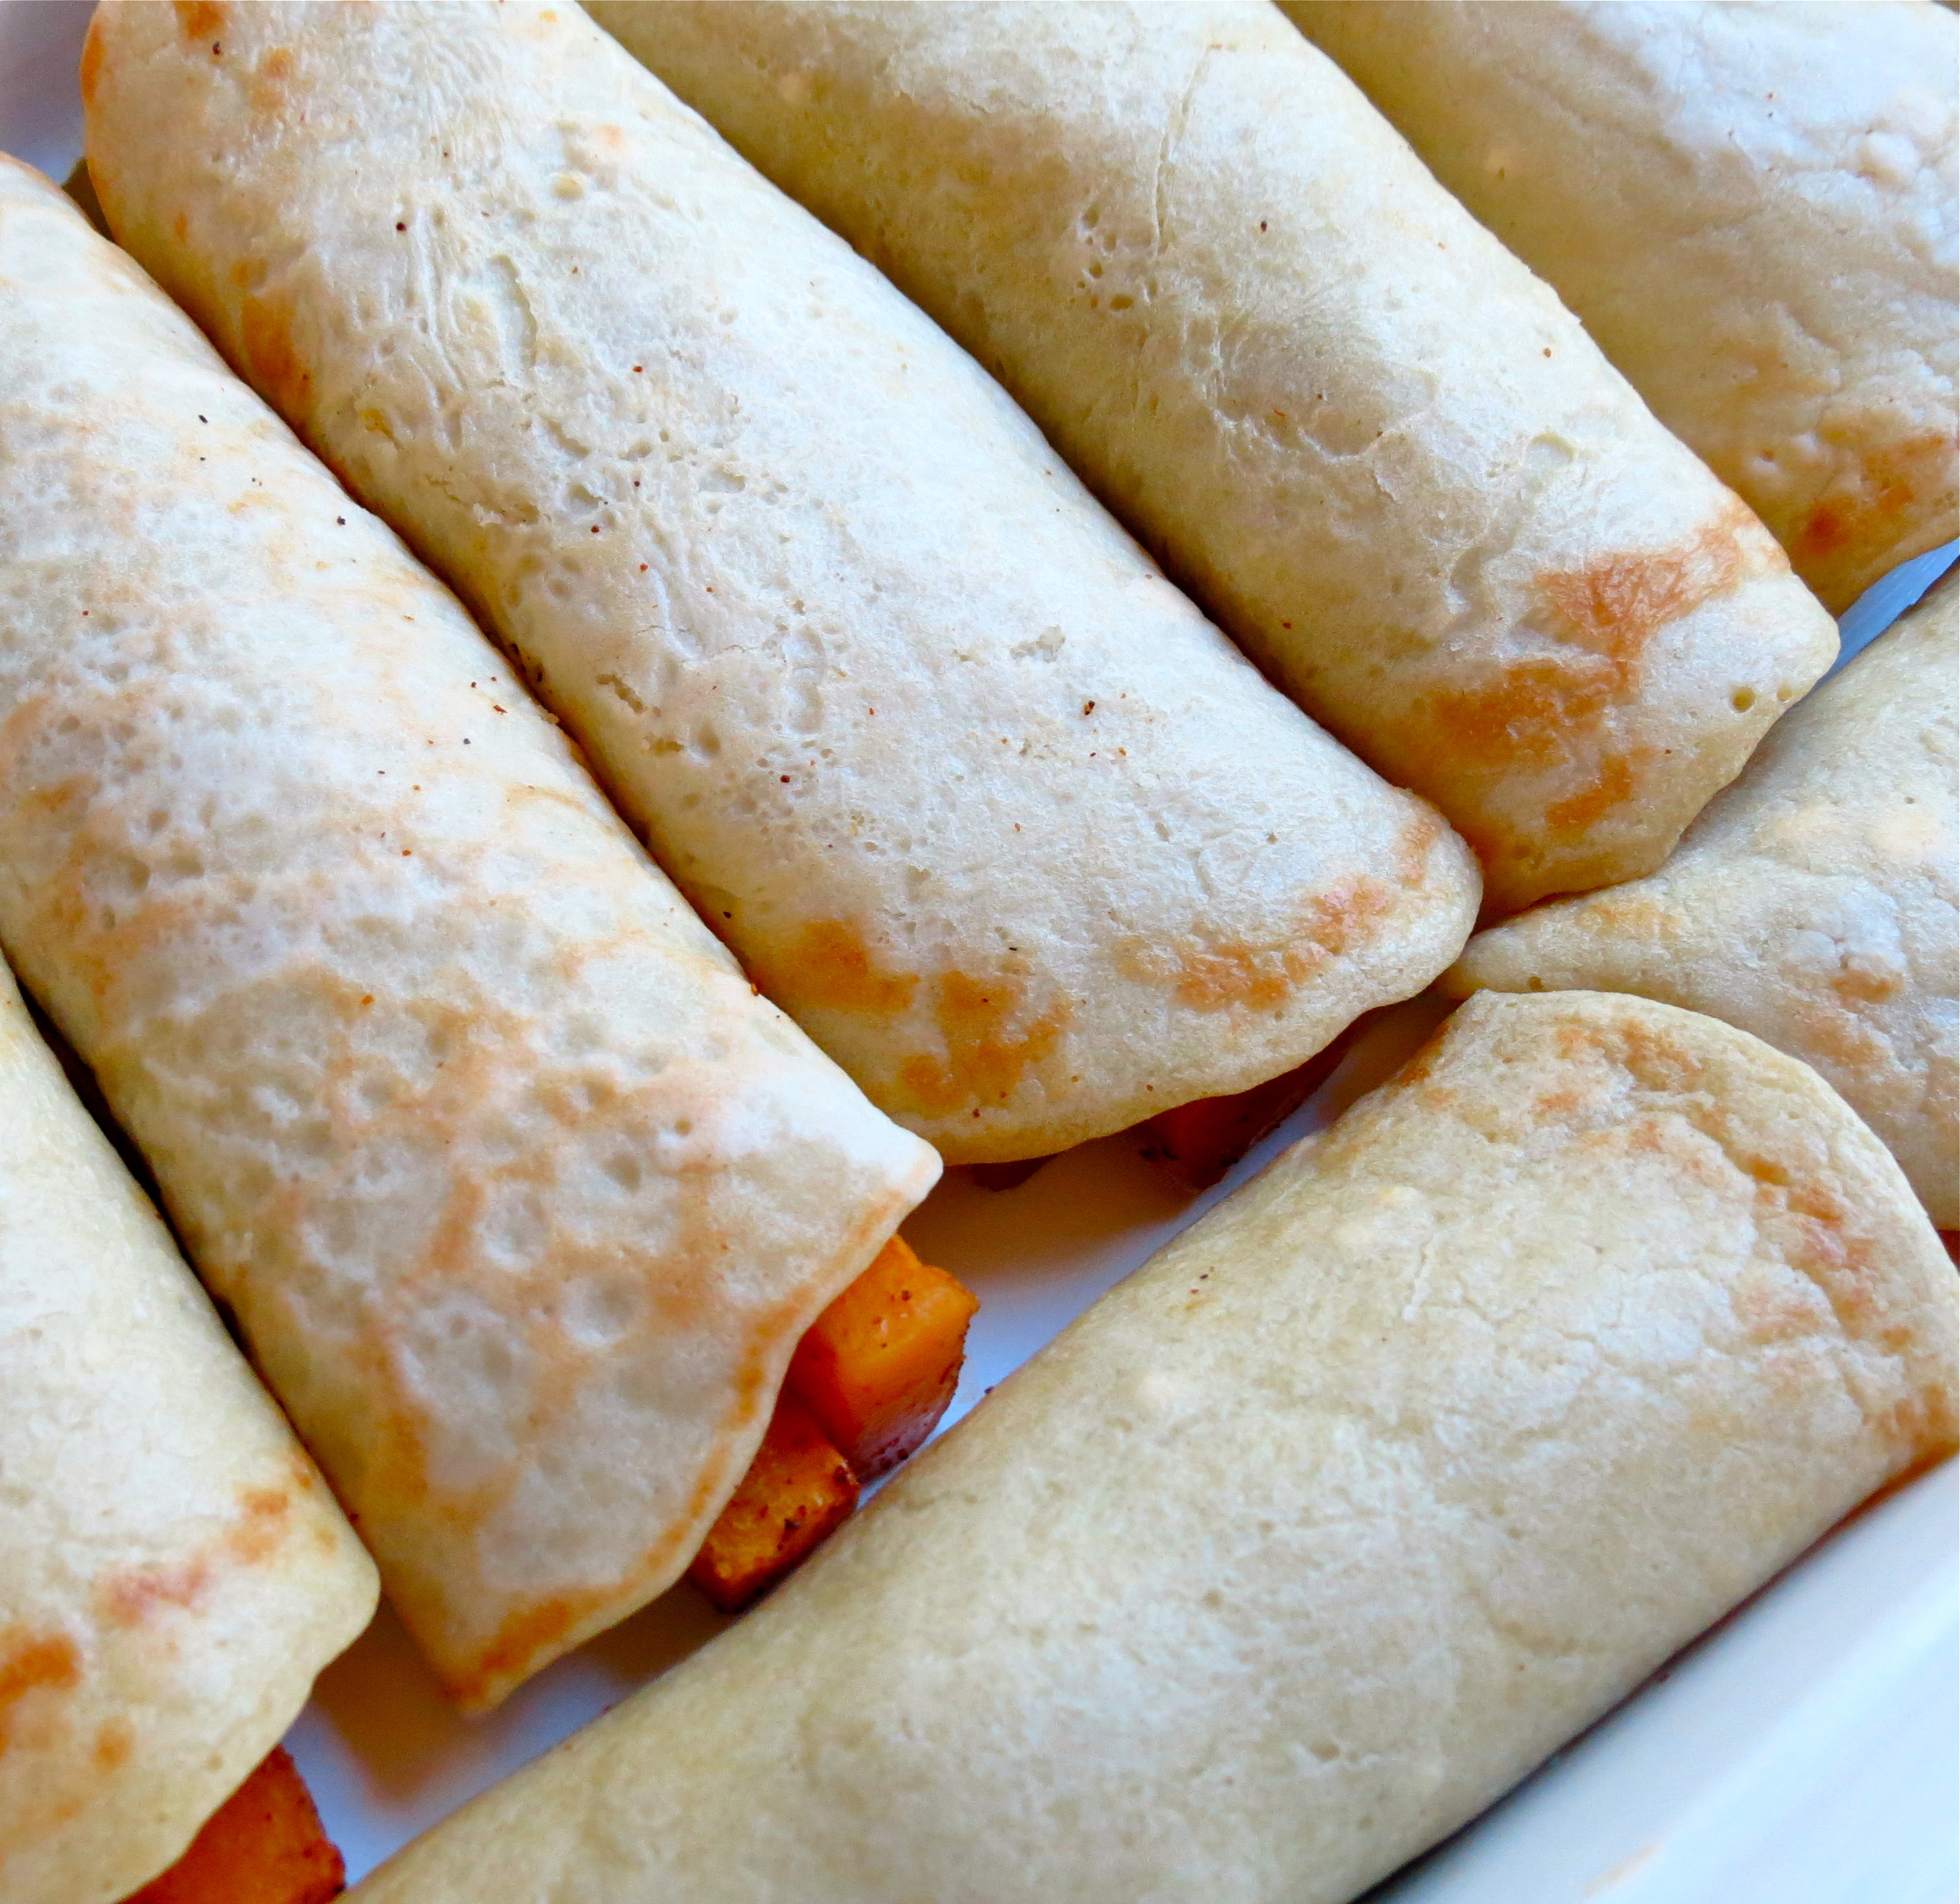 Enchiladas rolled up and placed in a baking dish.